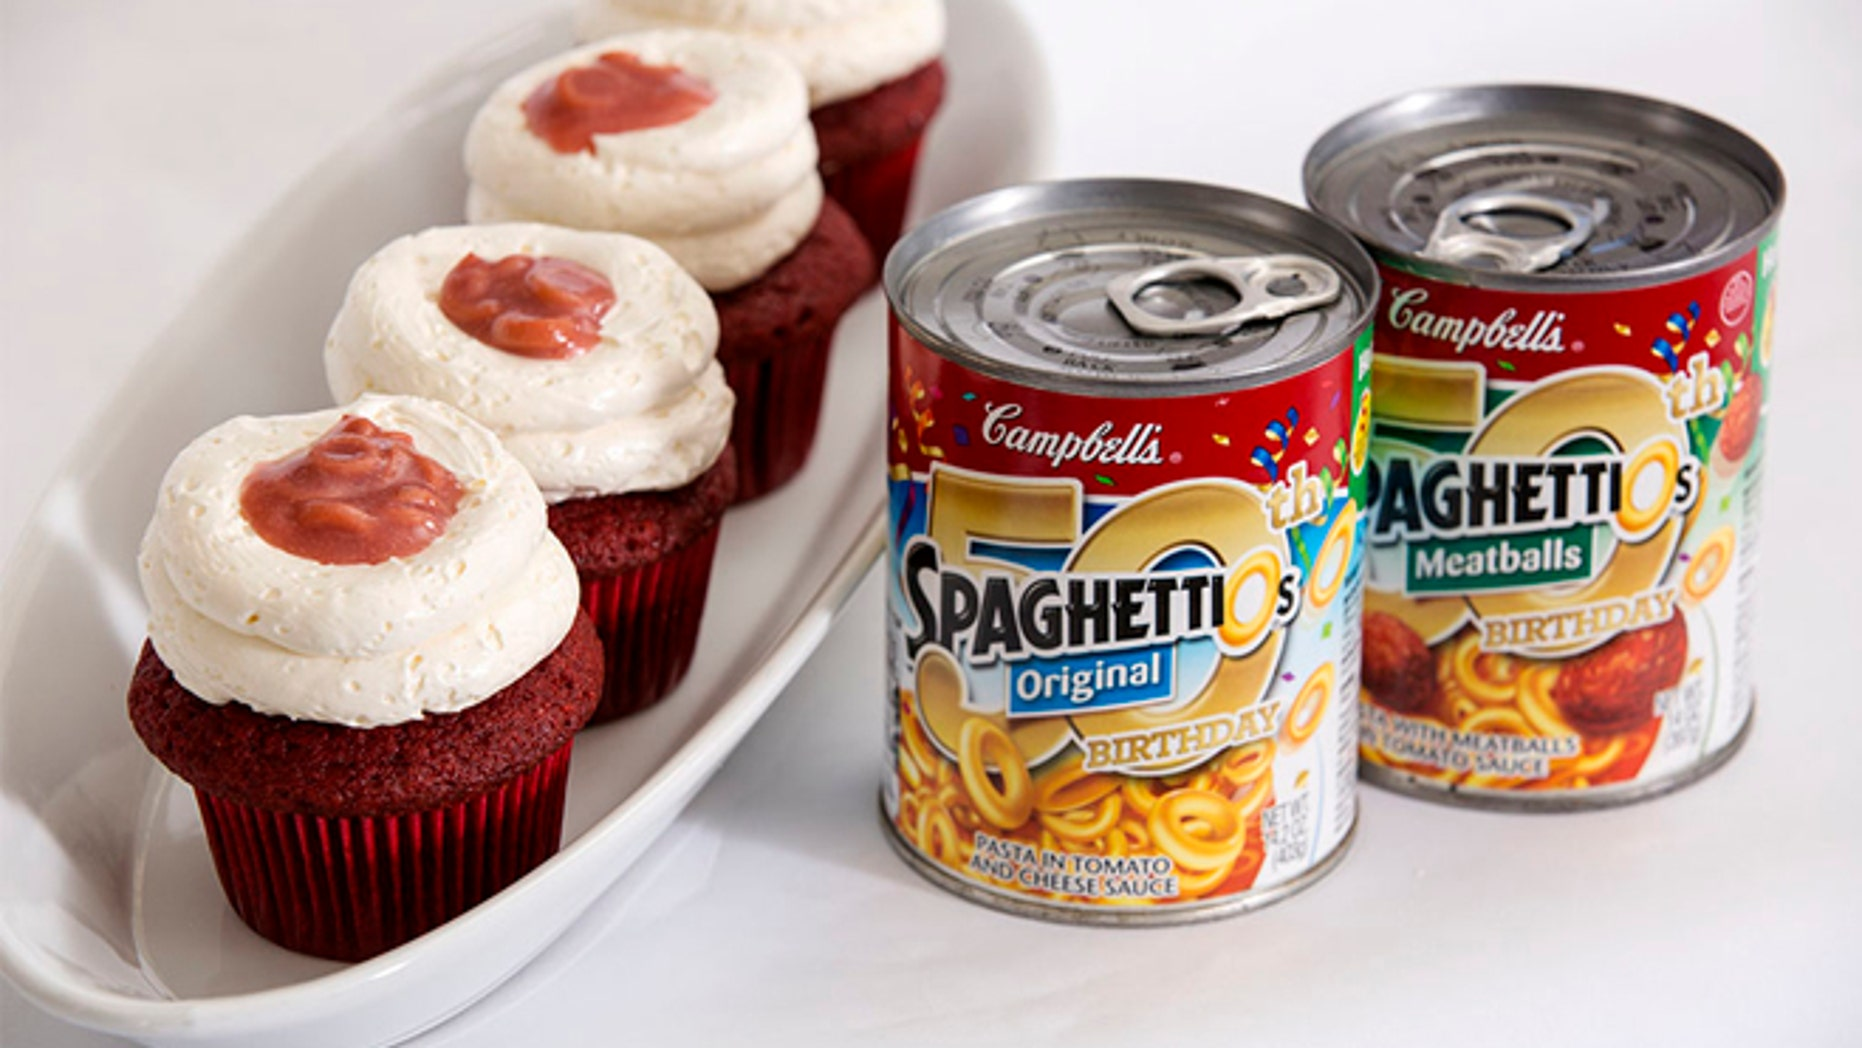 Those are real pasta rings on that cupcake.